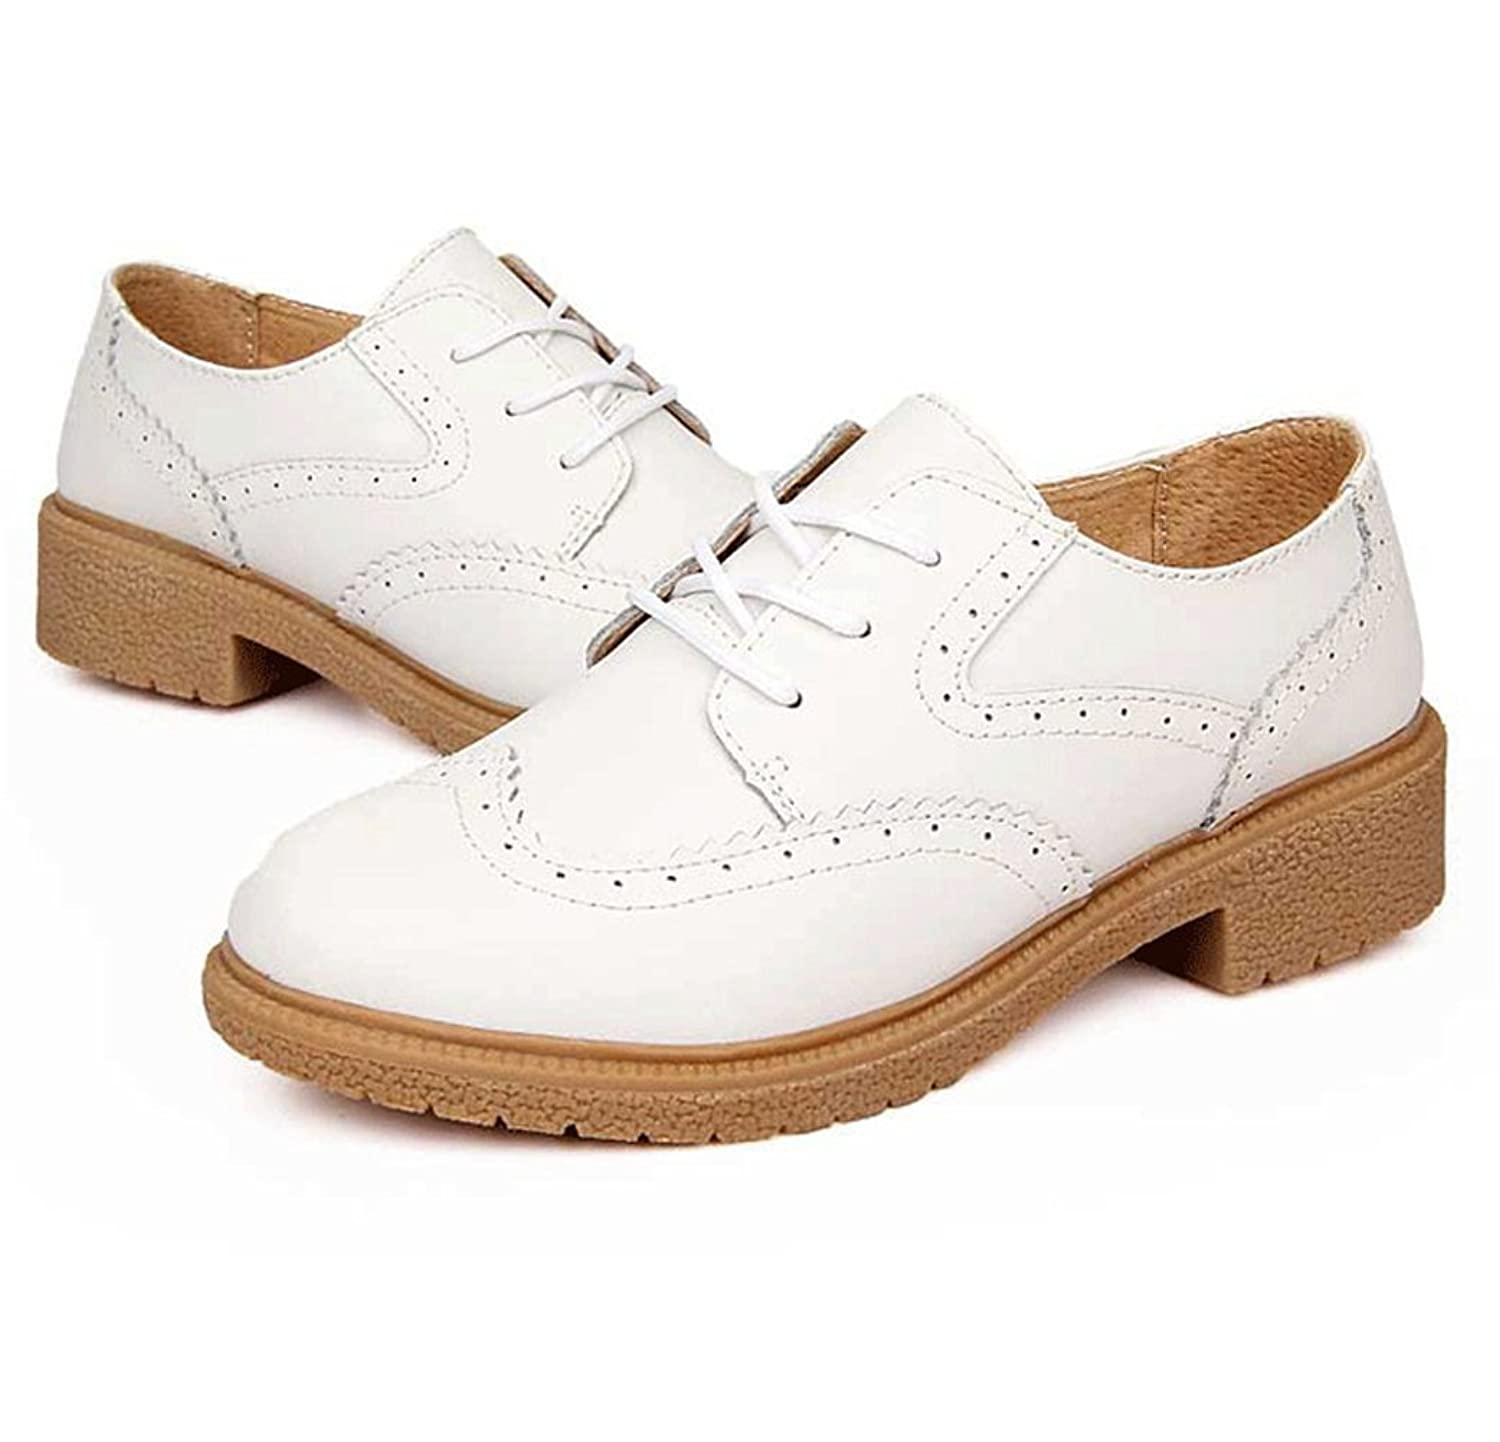 Utopia Boutique Women's Flat Shoe Wingtip Lace Up Leather Oxford Shoes